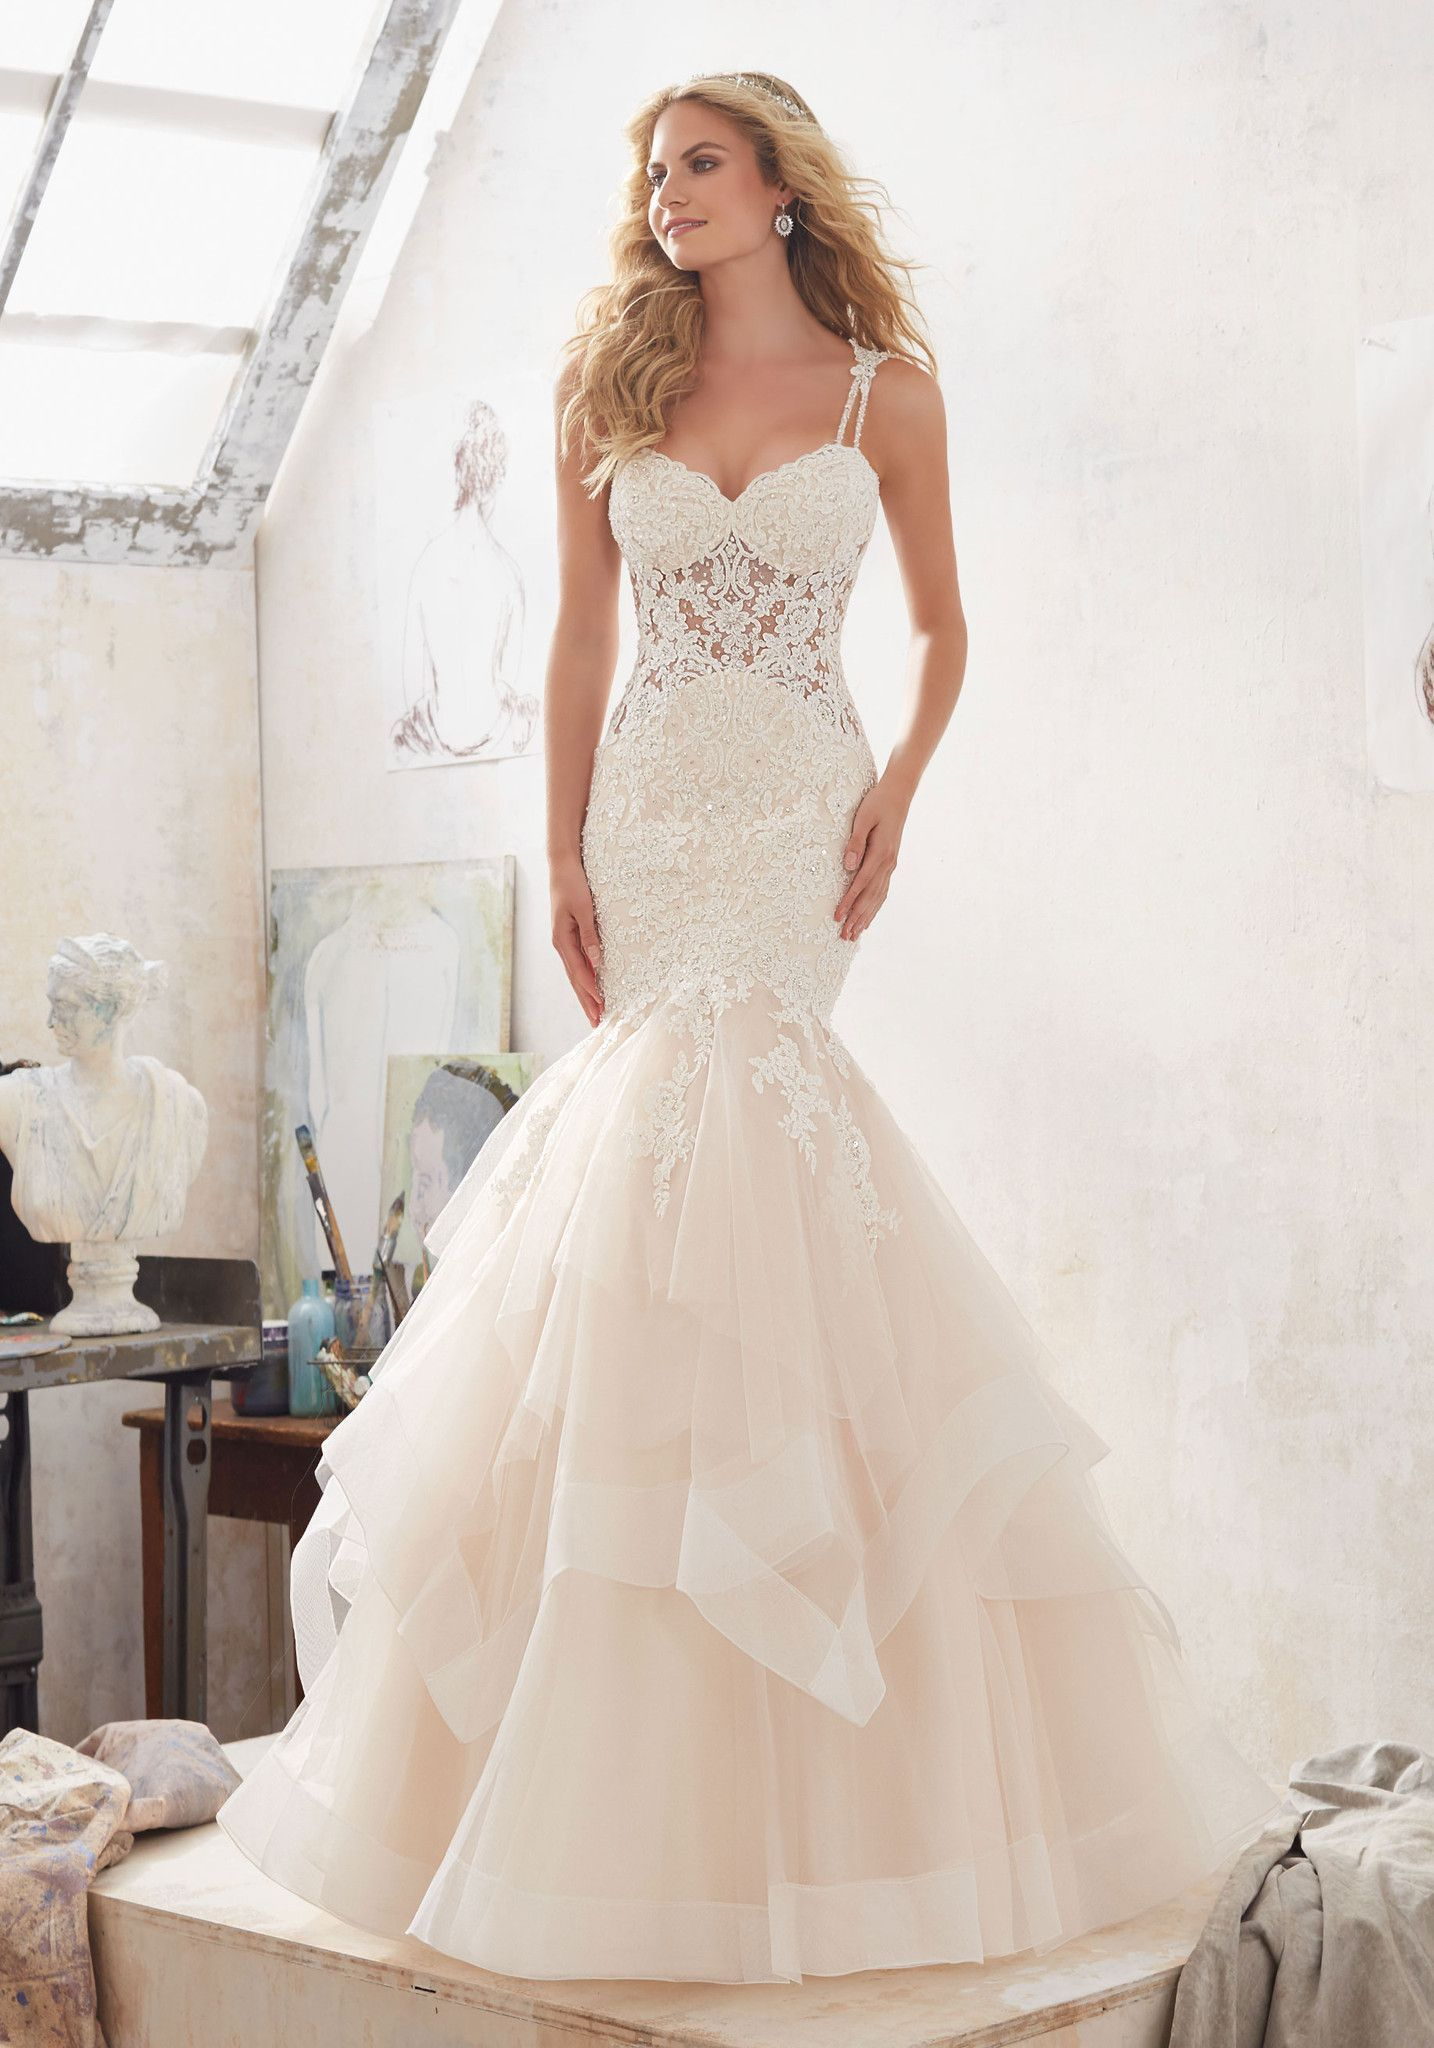 Mori lee marciela all dressed up bridal gown